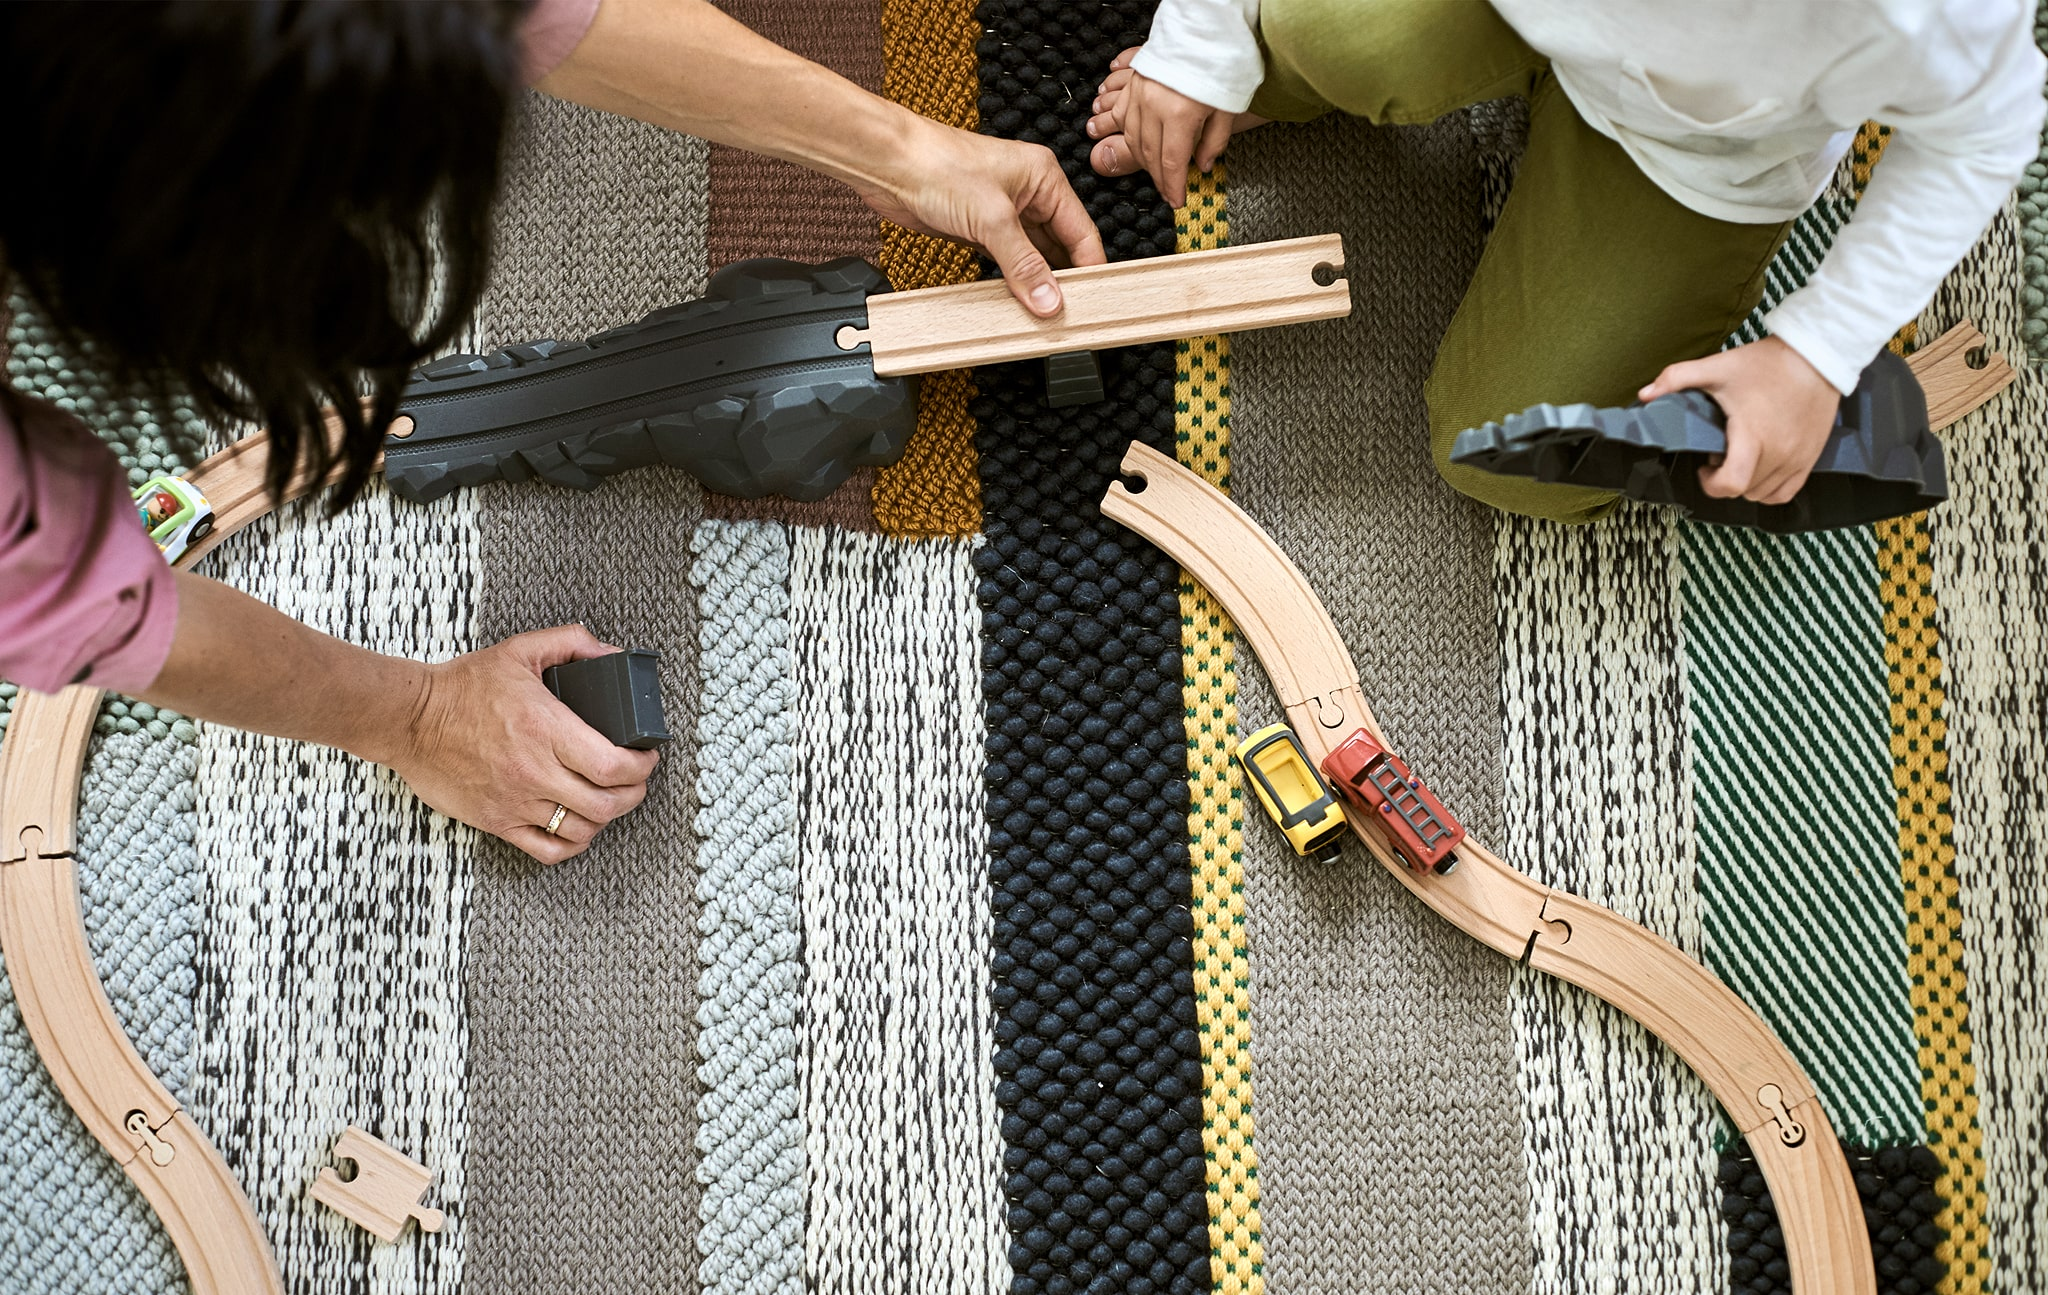 A mum and son build a wood road track together on a rug woven with different coloured stripes.